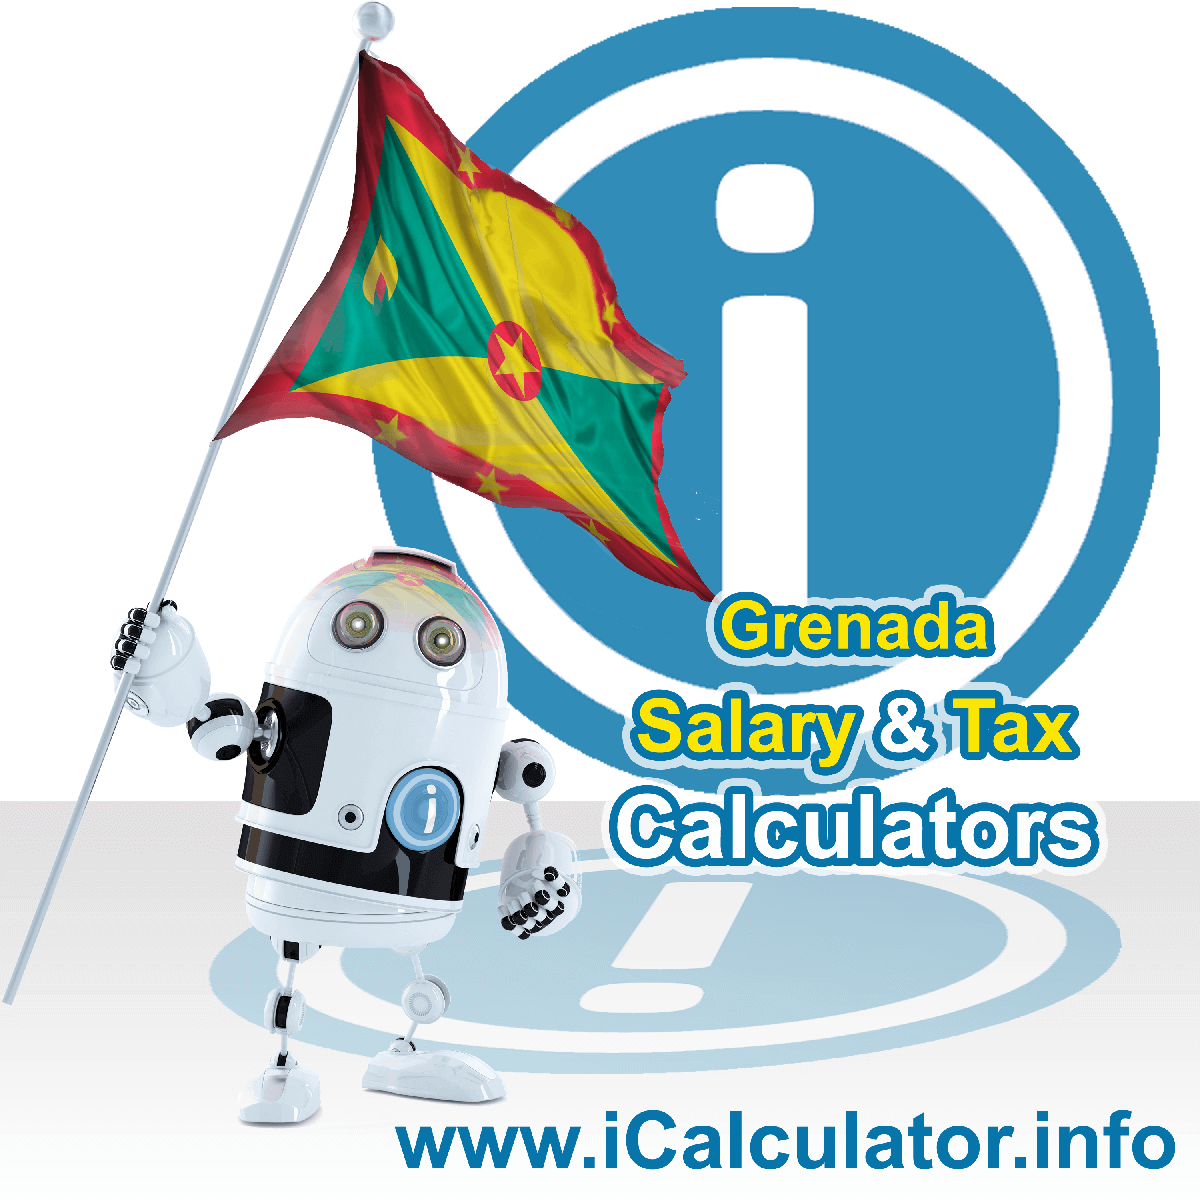 Grenada Salary Calculator. This image shows the Grenadaese flag and information relating to the tax formula for the Grenada Tax Calculator